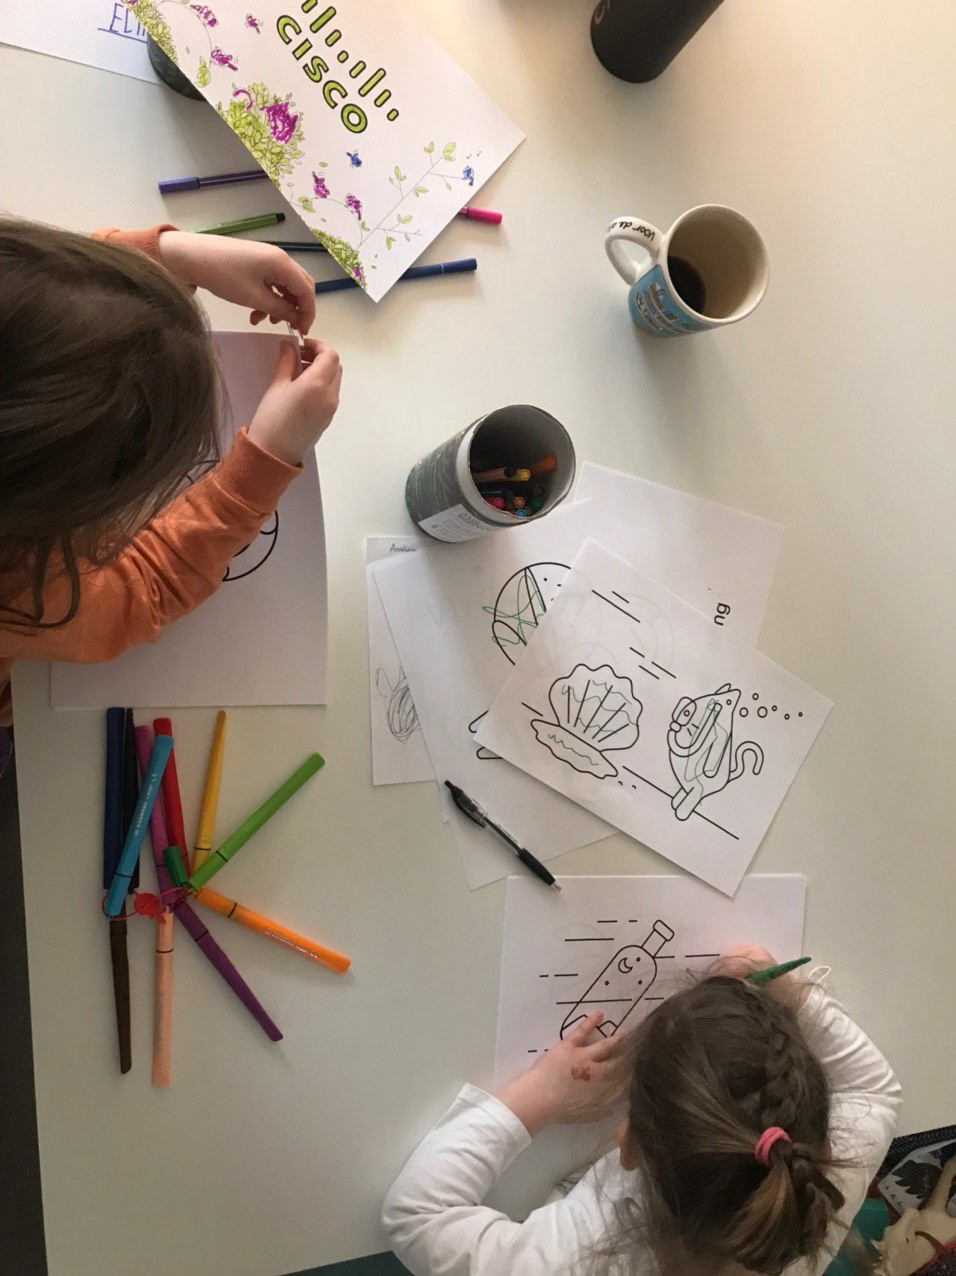 An overhead view of two children colouring in their pages